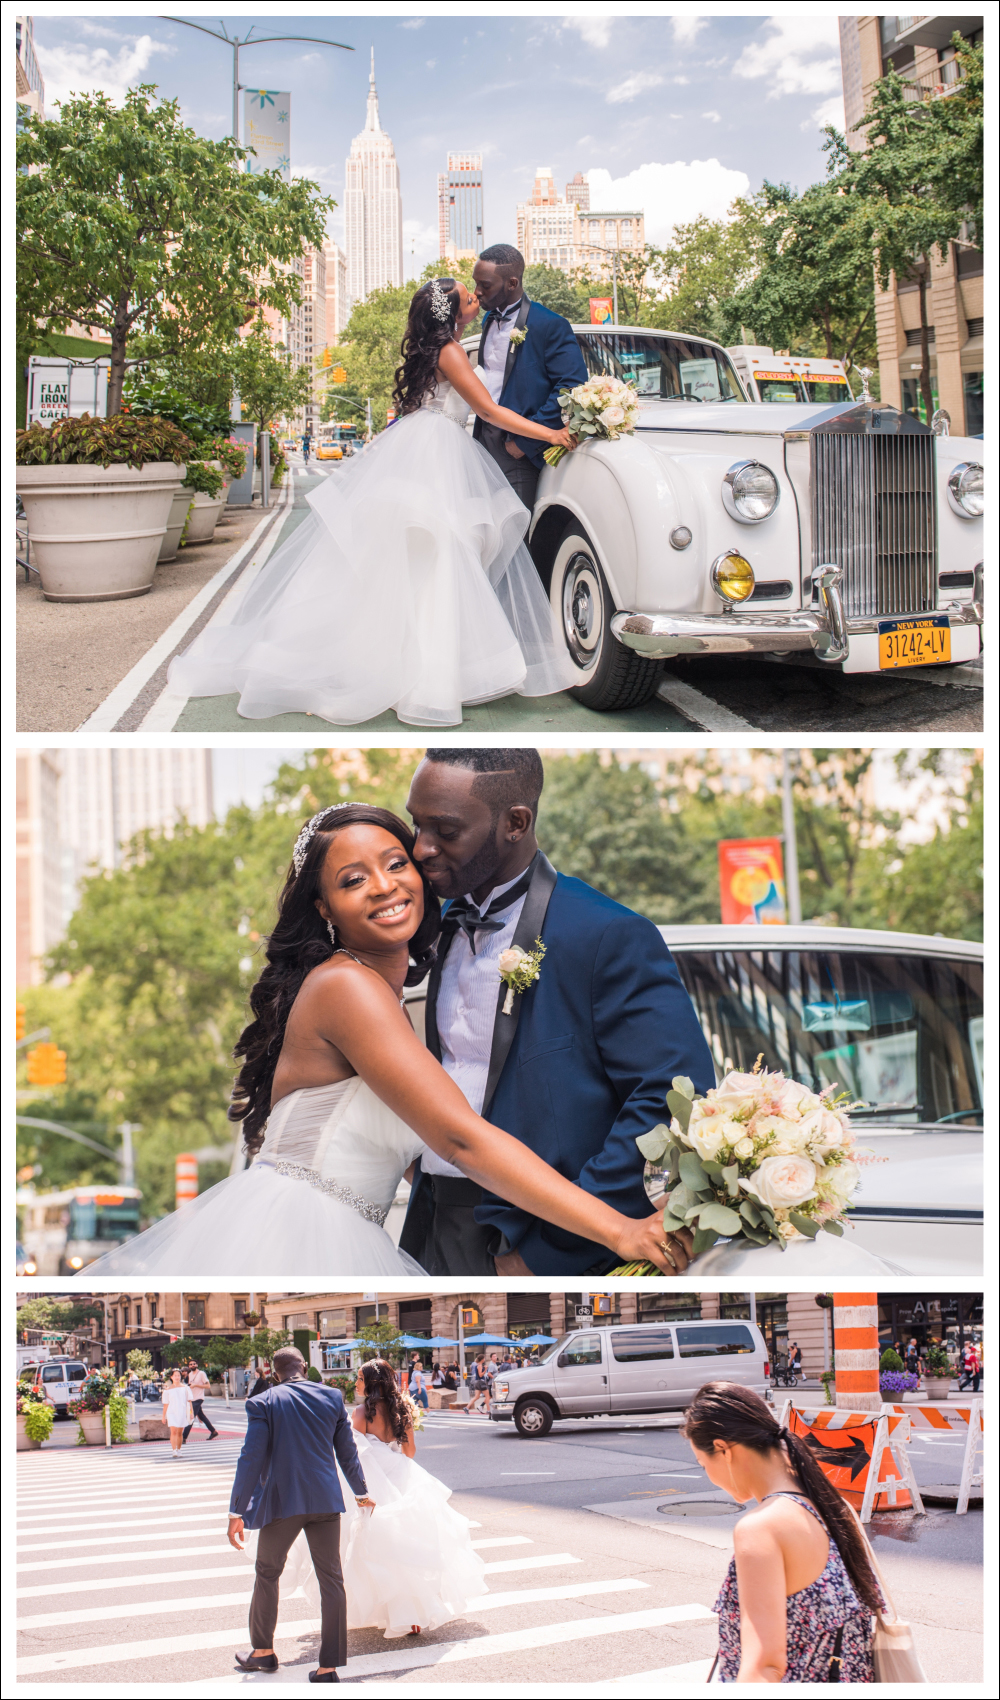 Celestial wedding at Marmara hotel and Midtown Loft & Terrace, NYC